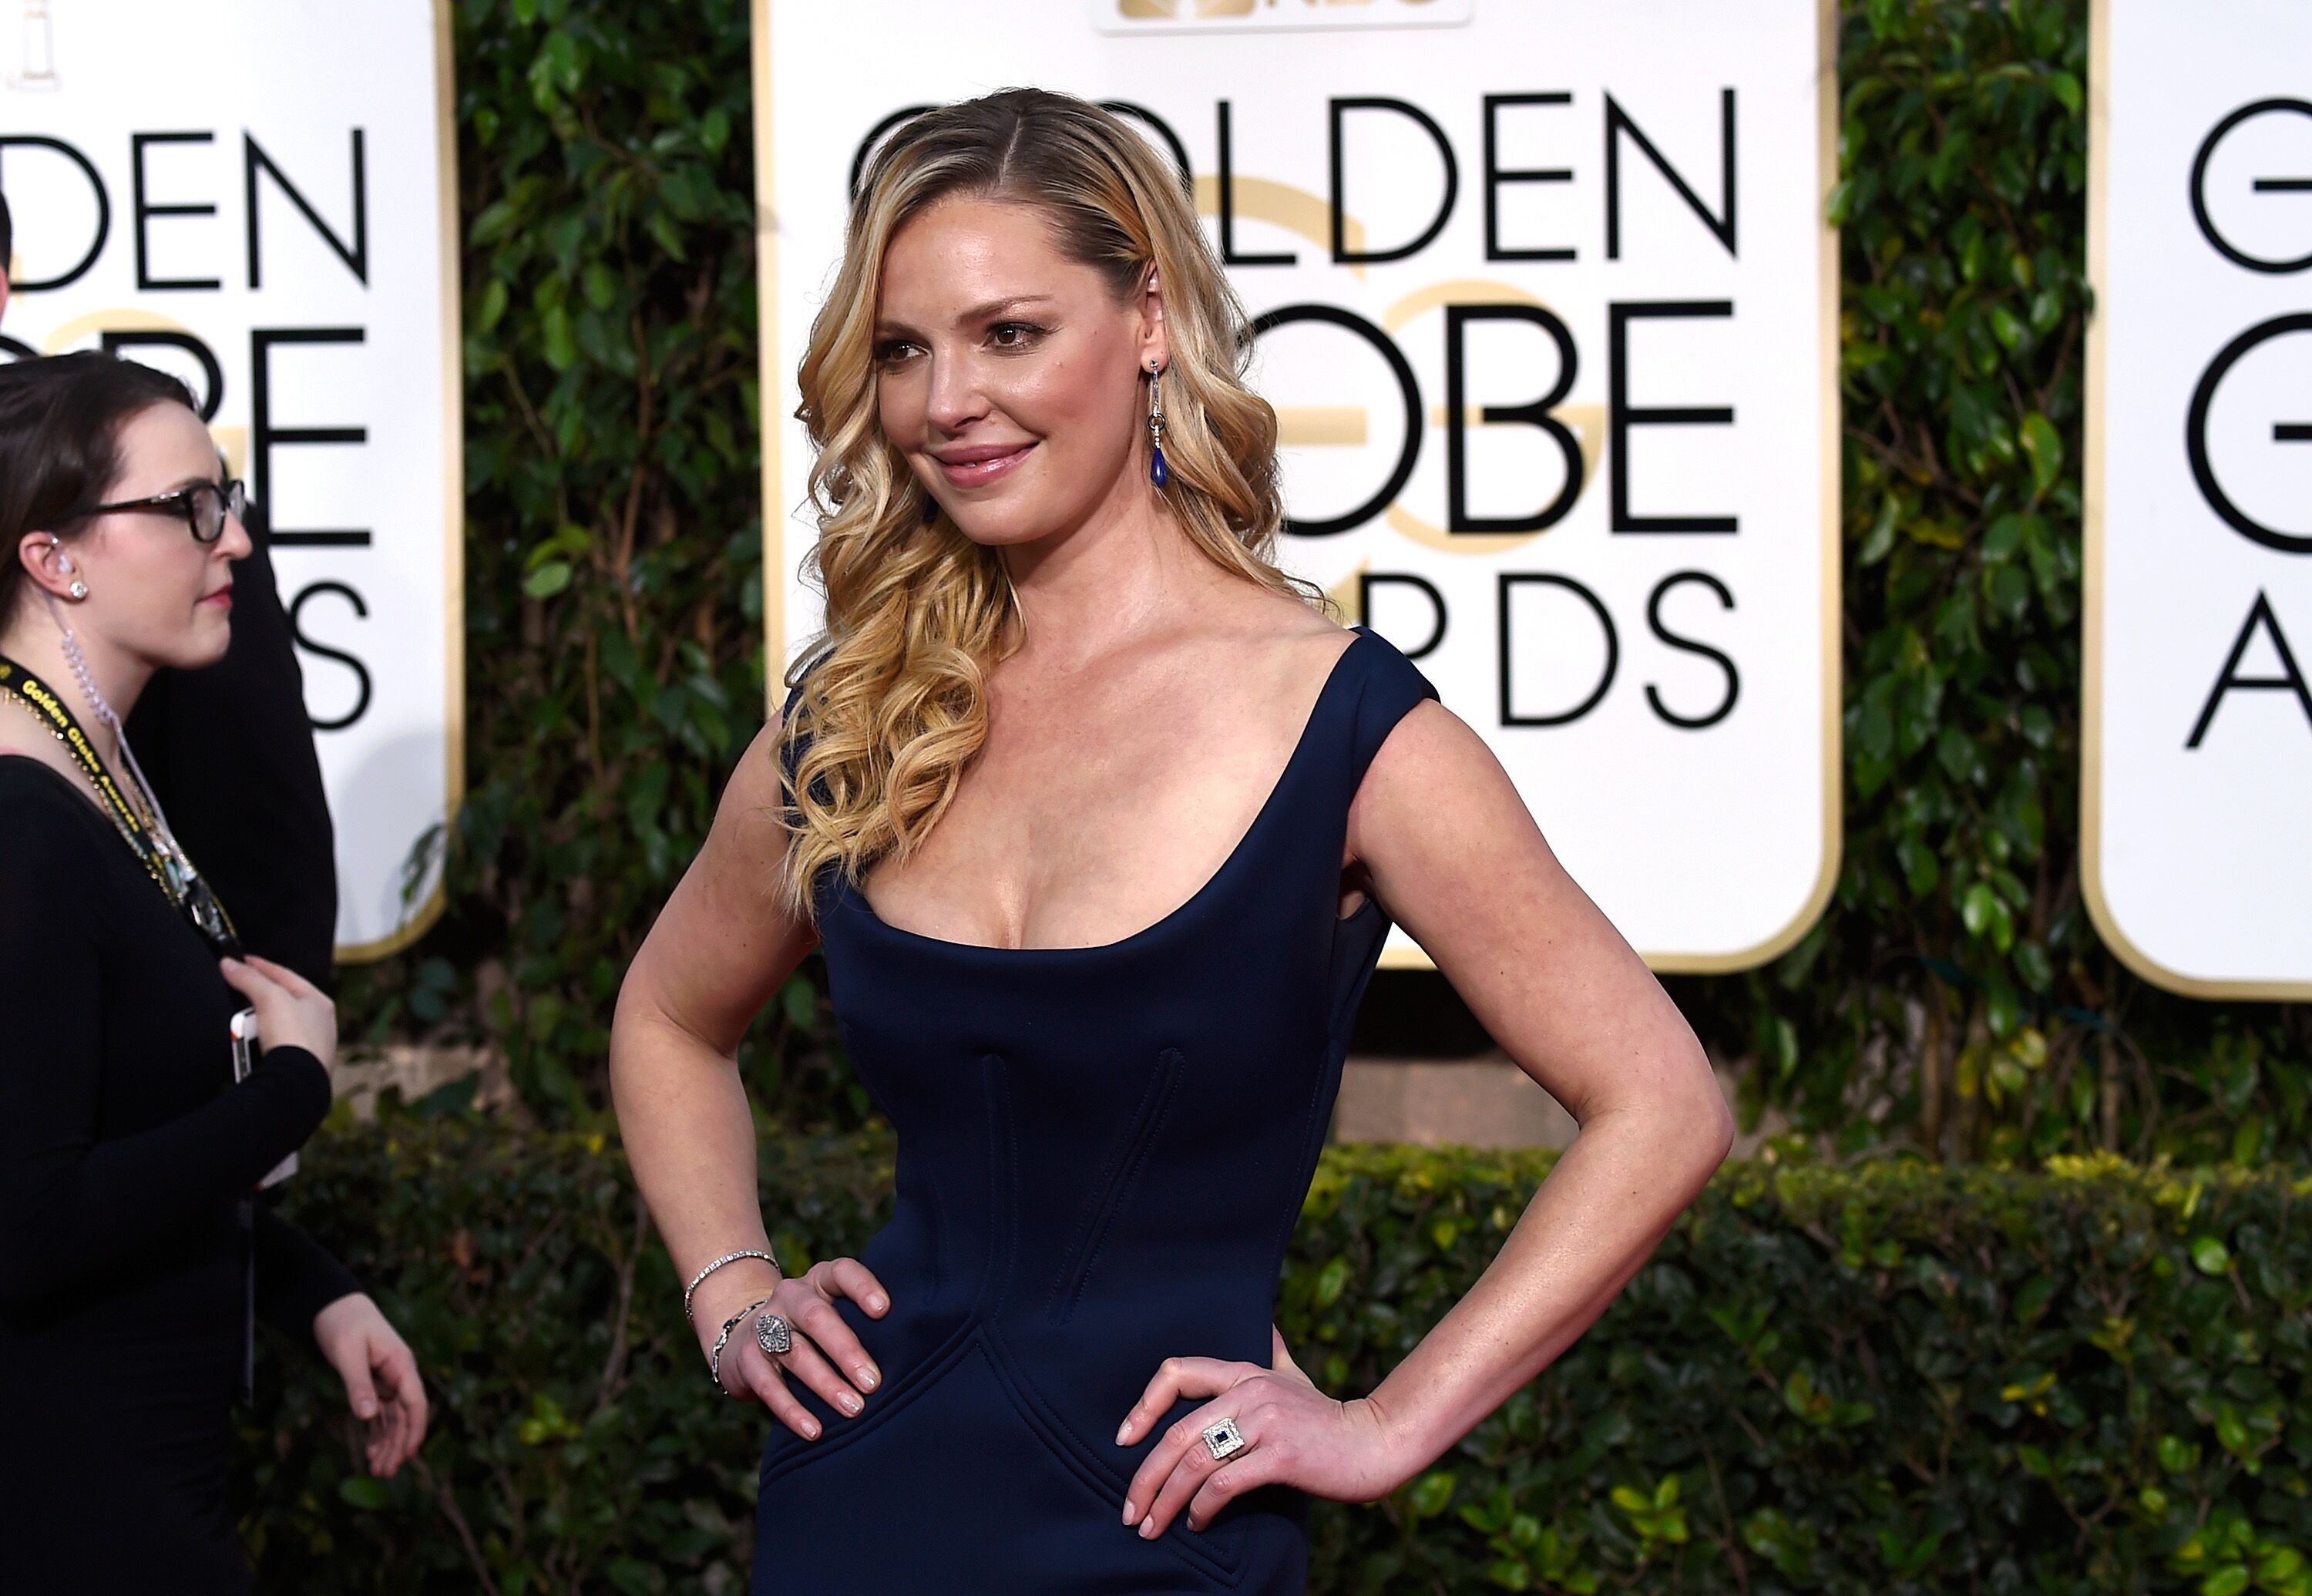 Katherine Heigl attends the 72nd Annual Golden Globe Awards. | Source: Getty Images